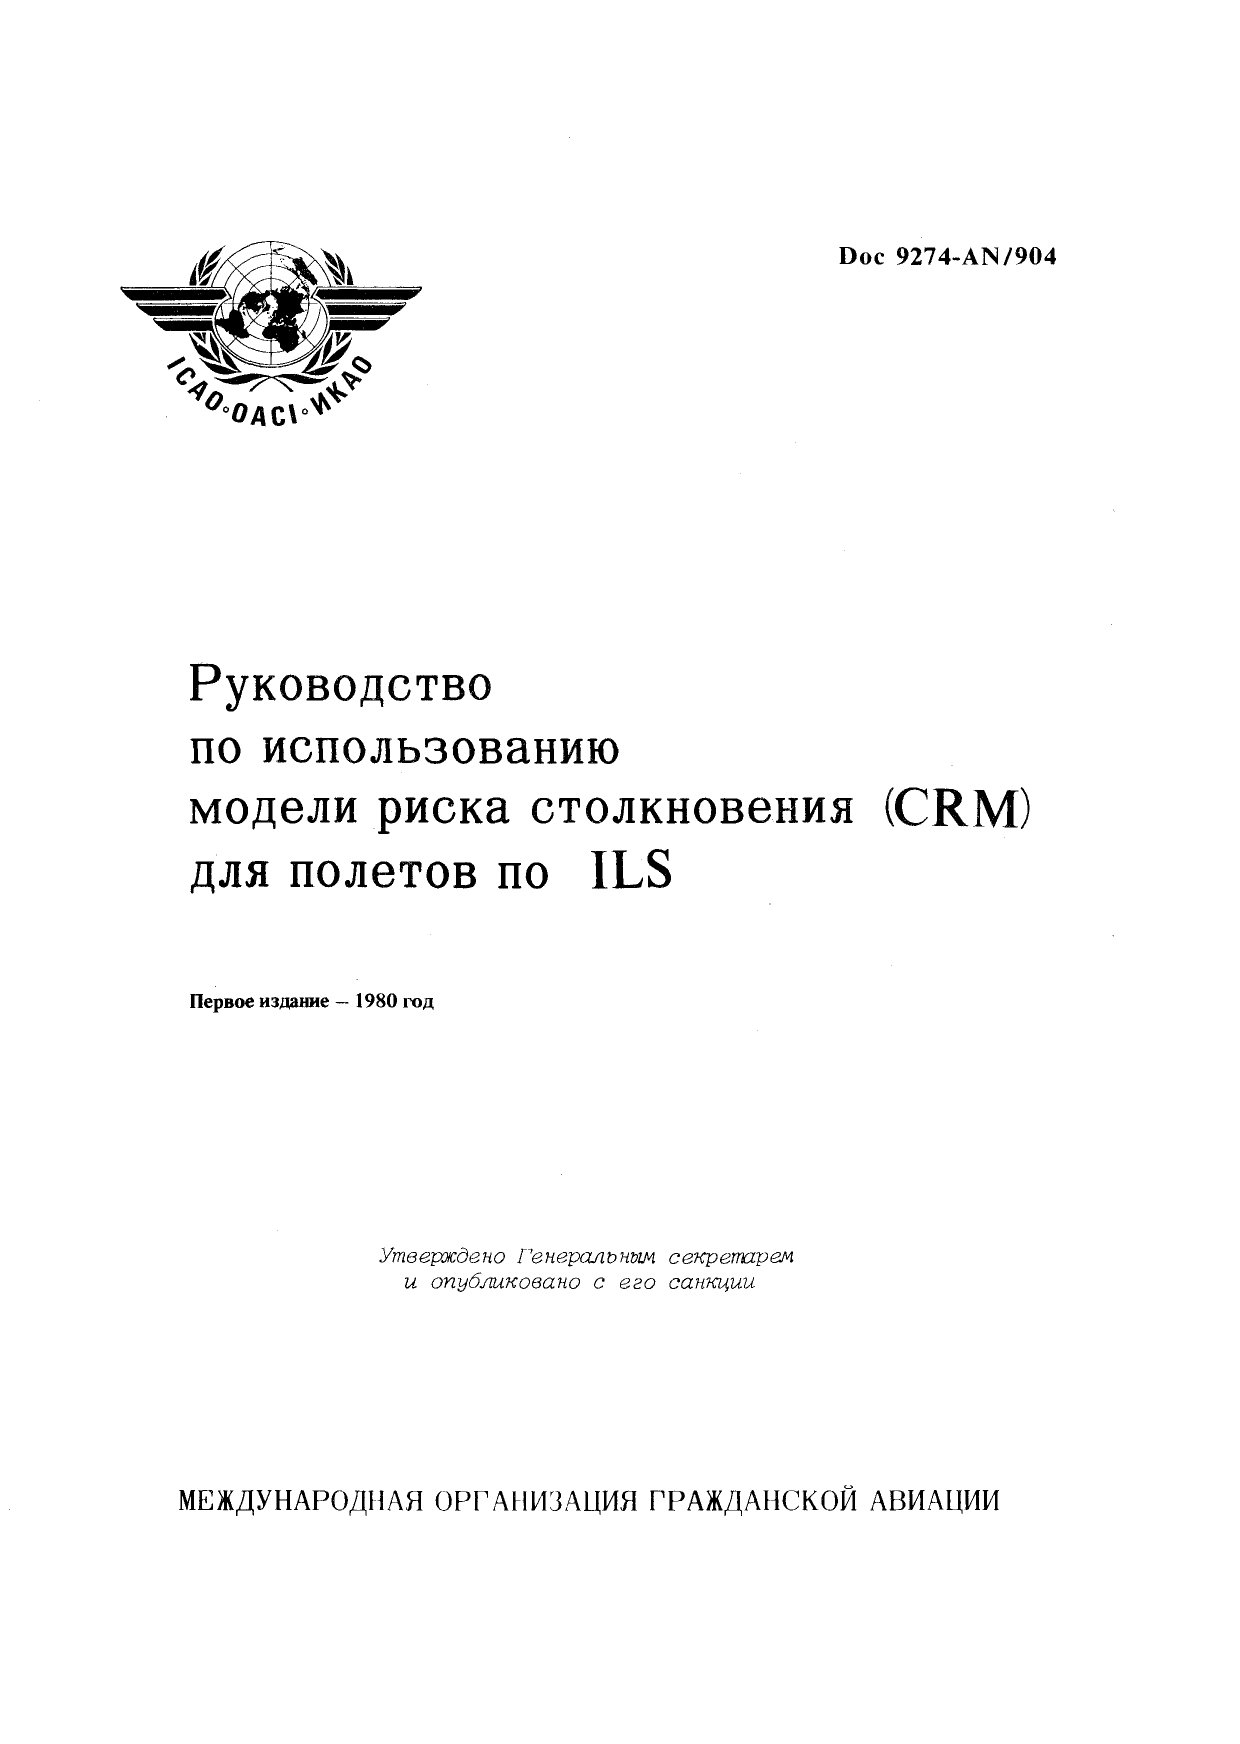 ICAO DOC pdf download - 2shared